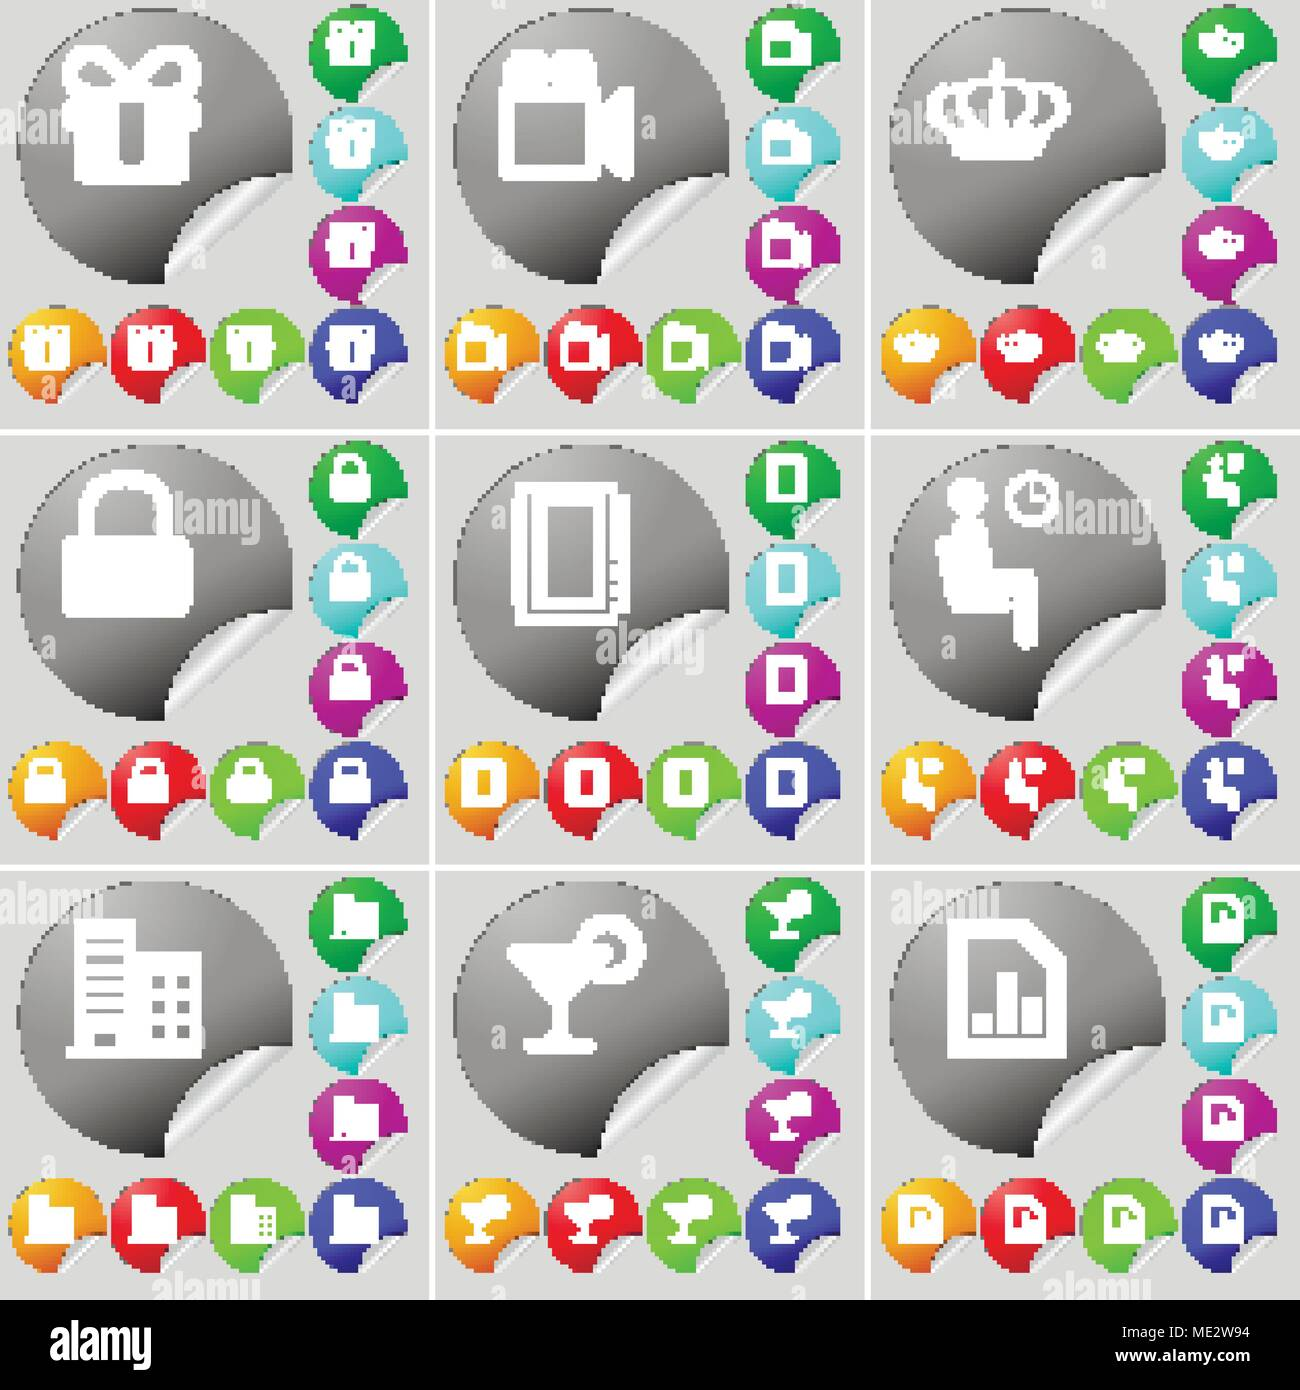 hight resolution of gift film camera crown lock notebook silhouette building cocktail diagram file sign icon a set of seventy two colorful round buttons sticker